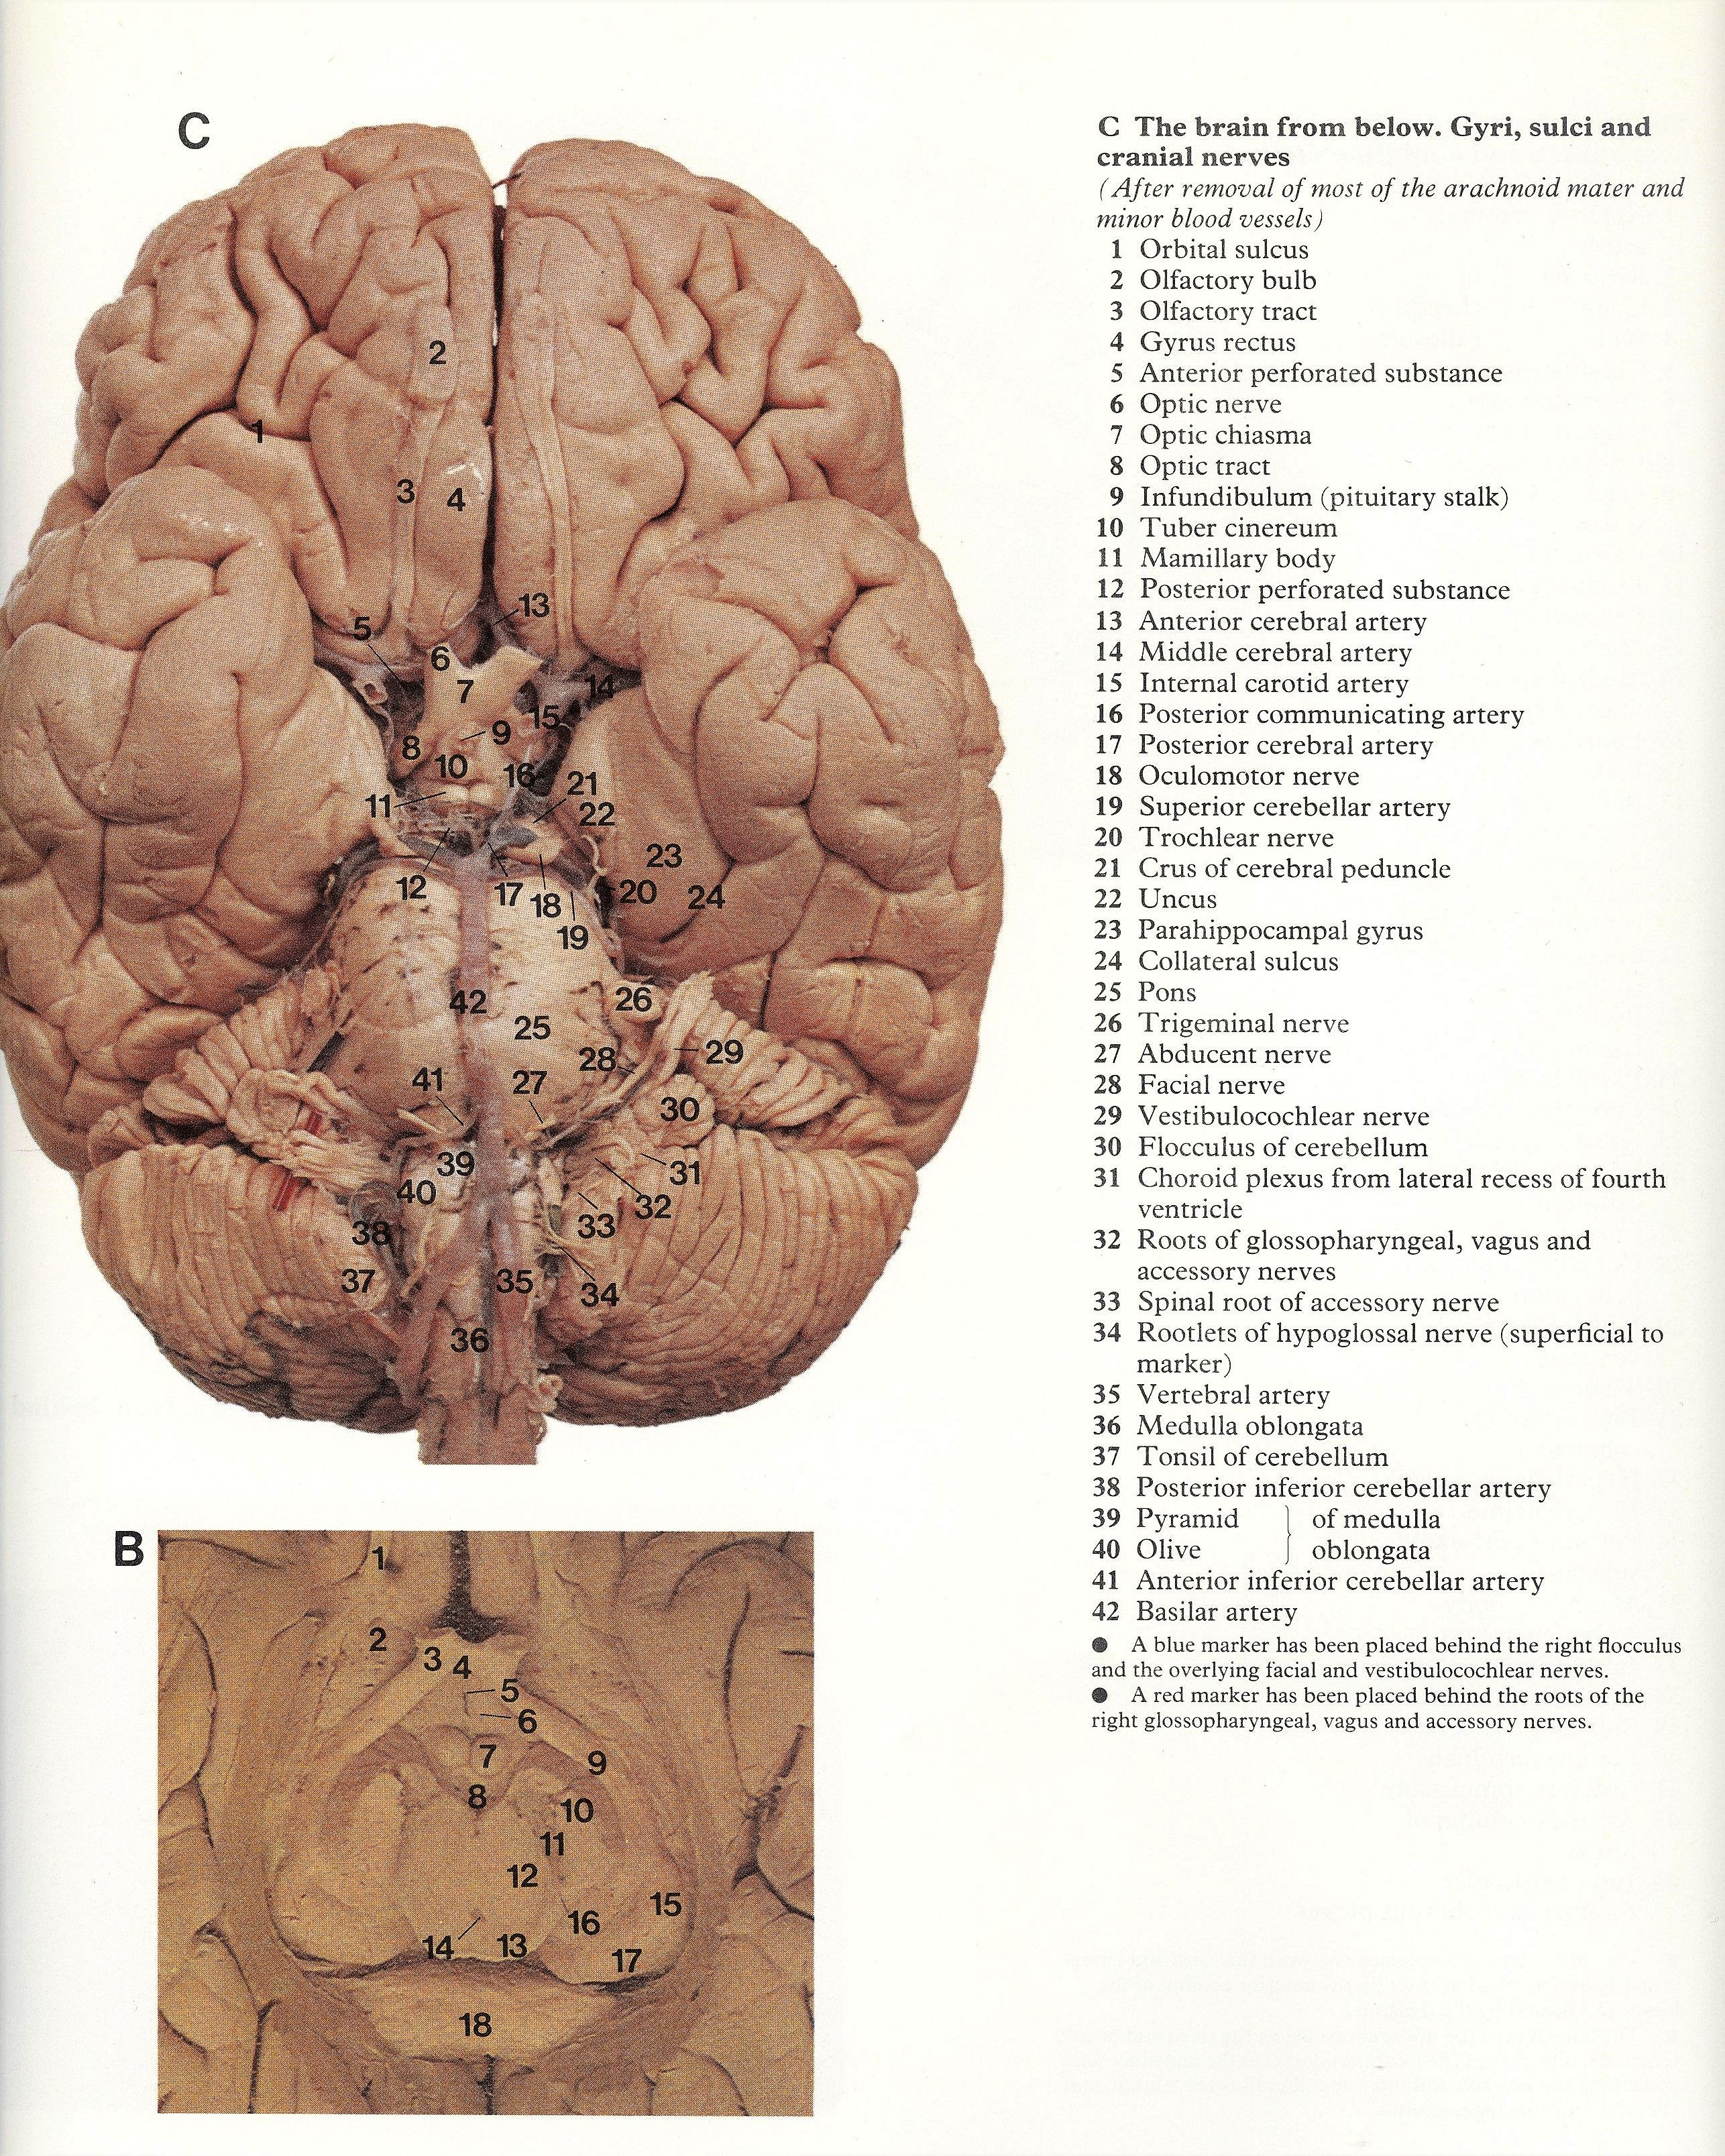 Pin by Bengt Sandberg on Part 1 of 6 - Head,Neck and Brain - A ...